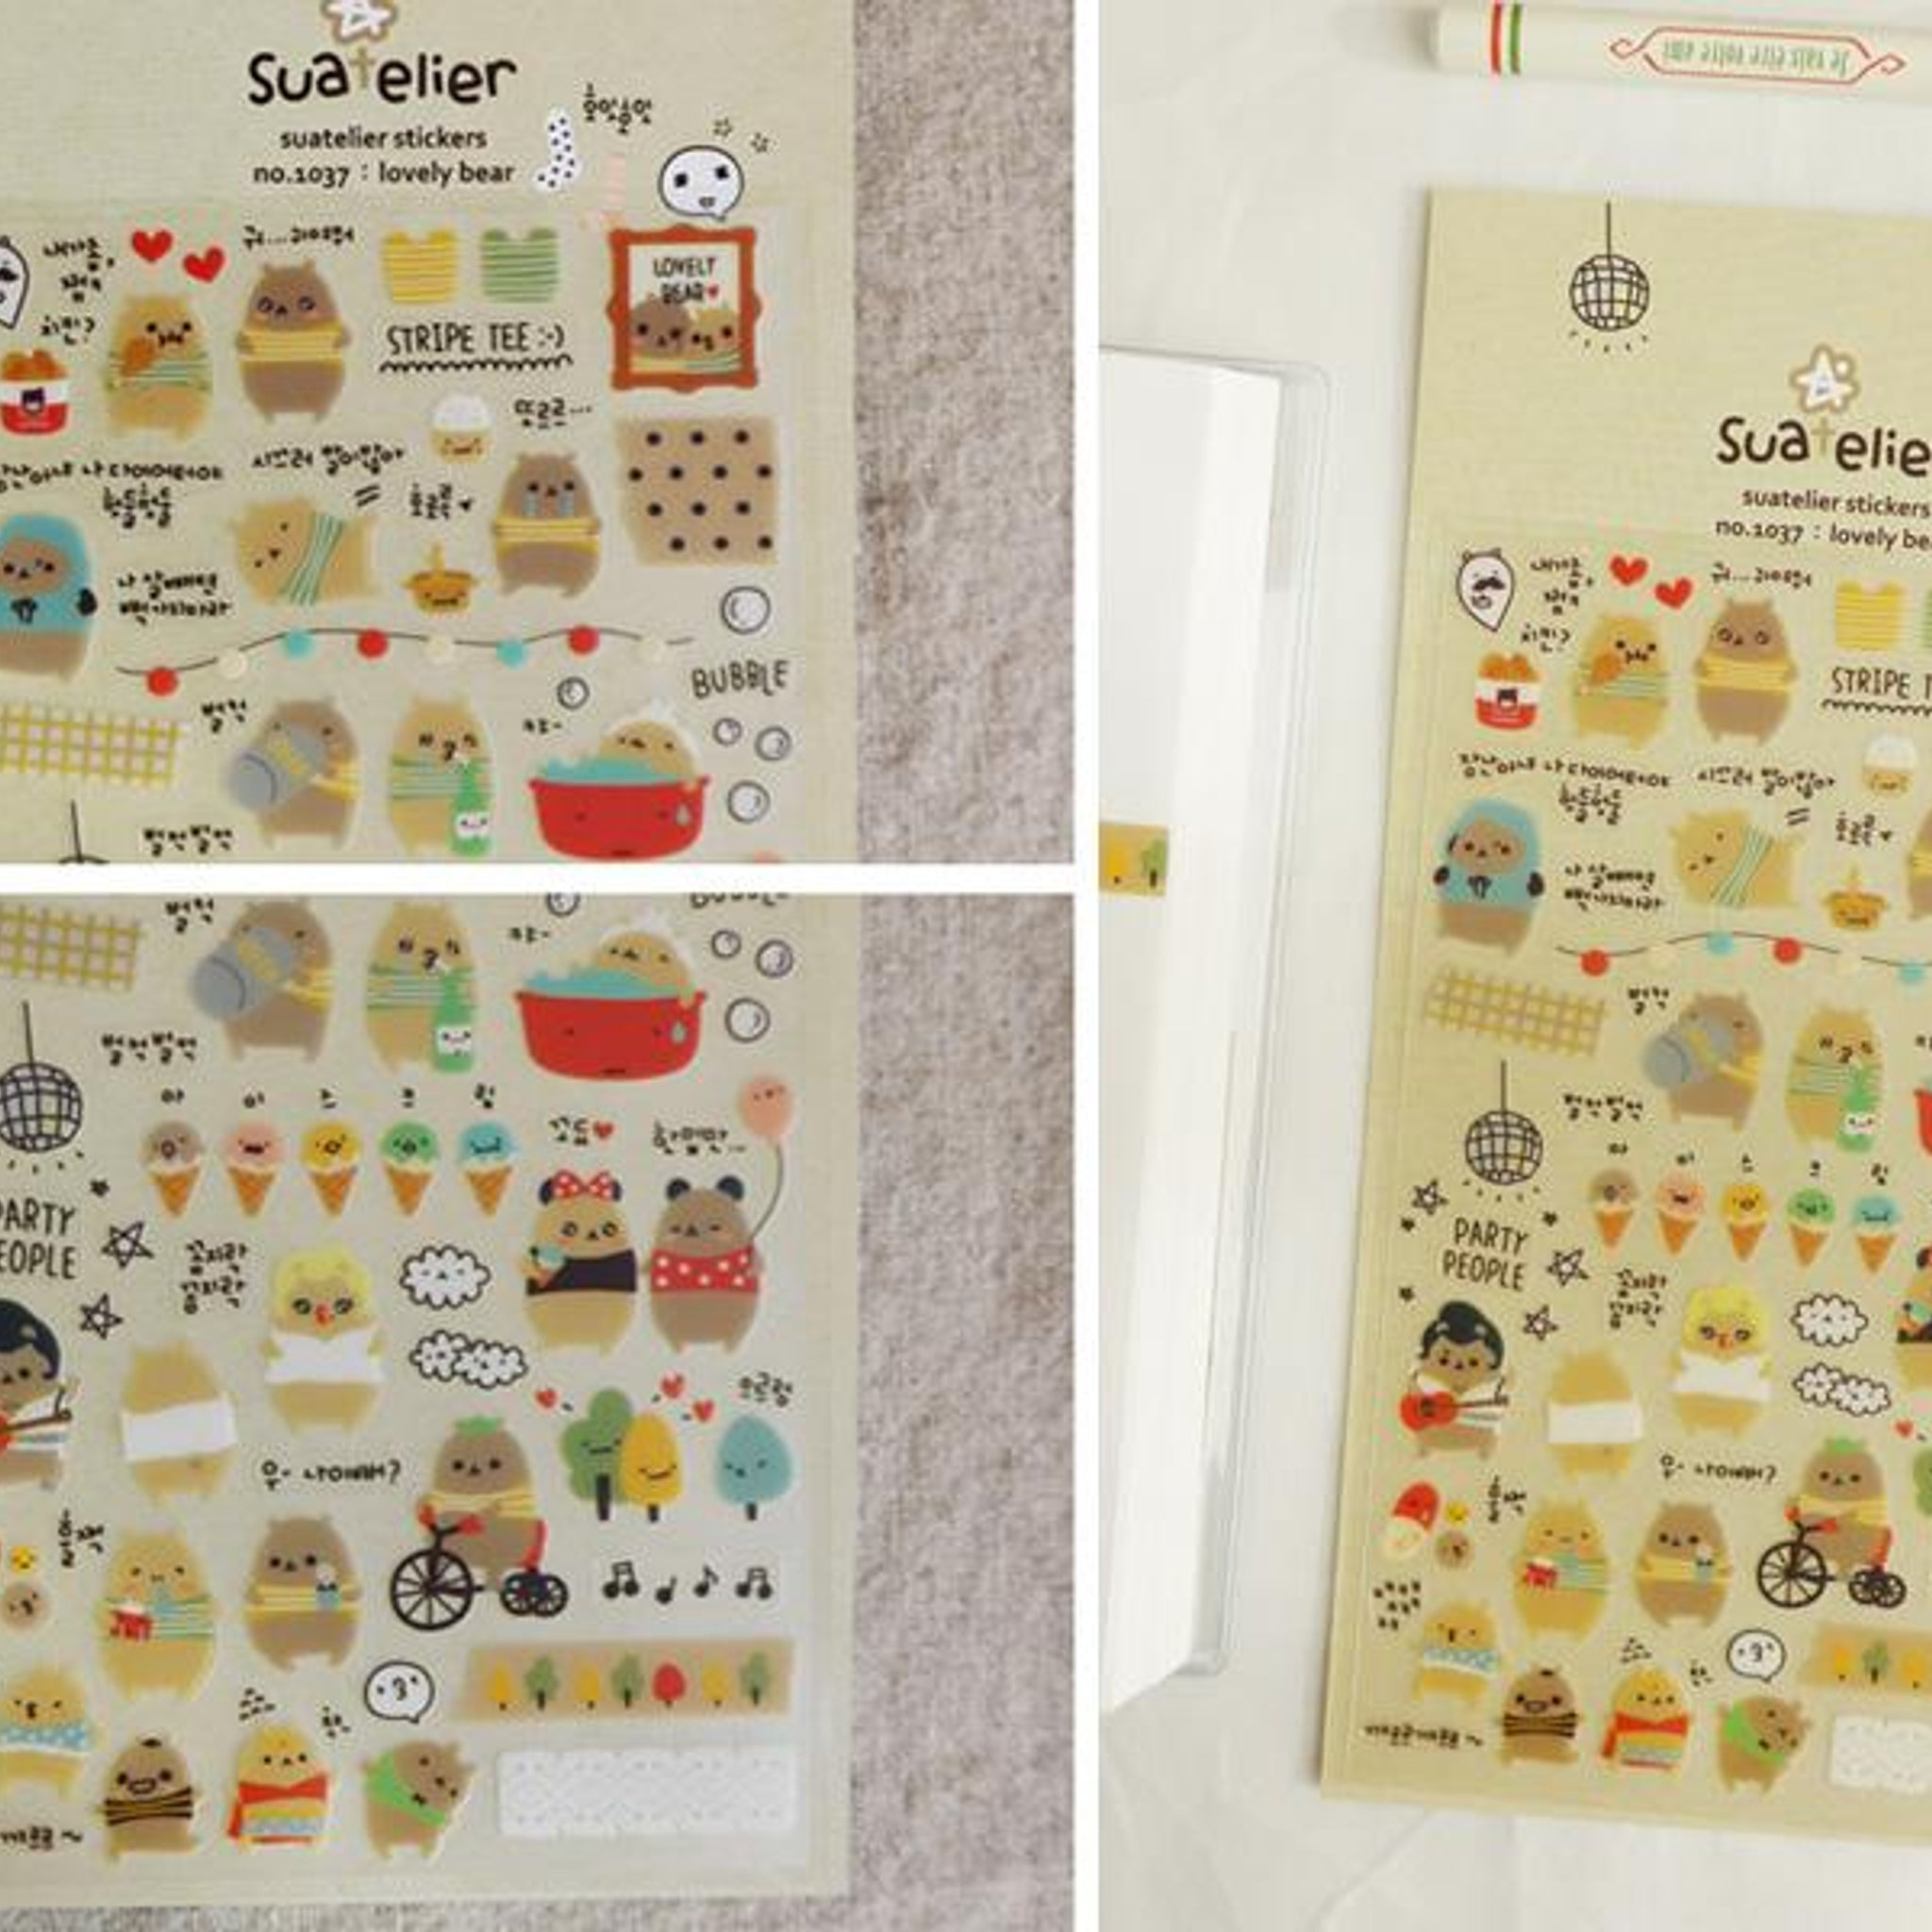 Suatelier Lovely Bear sticker